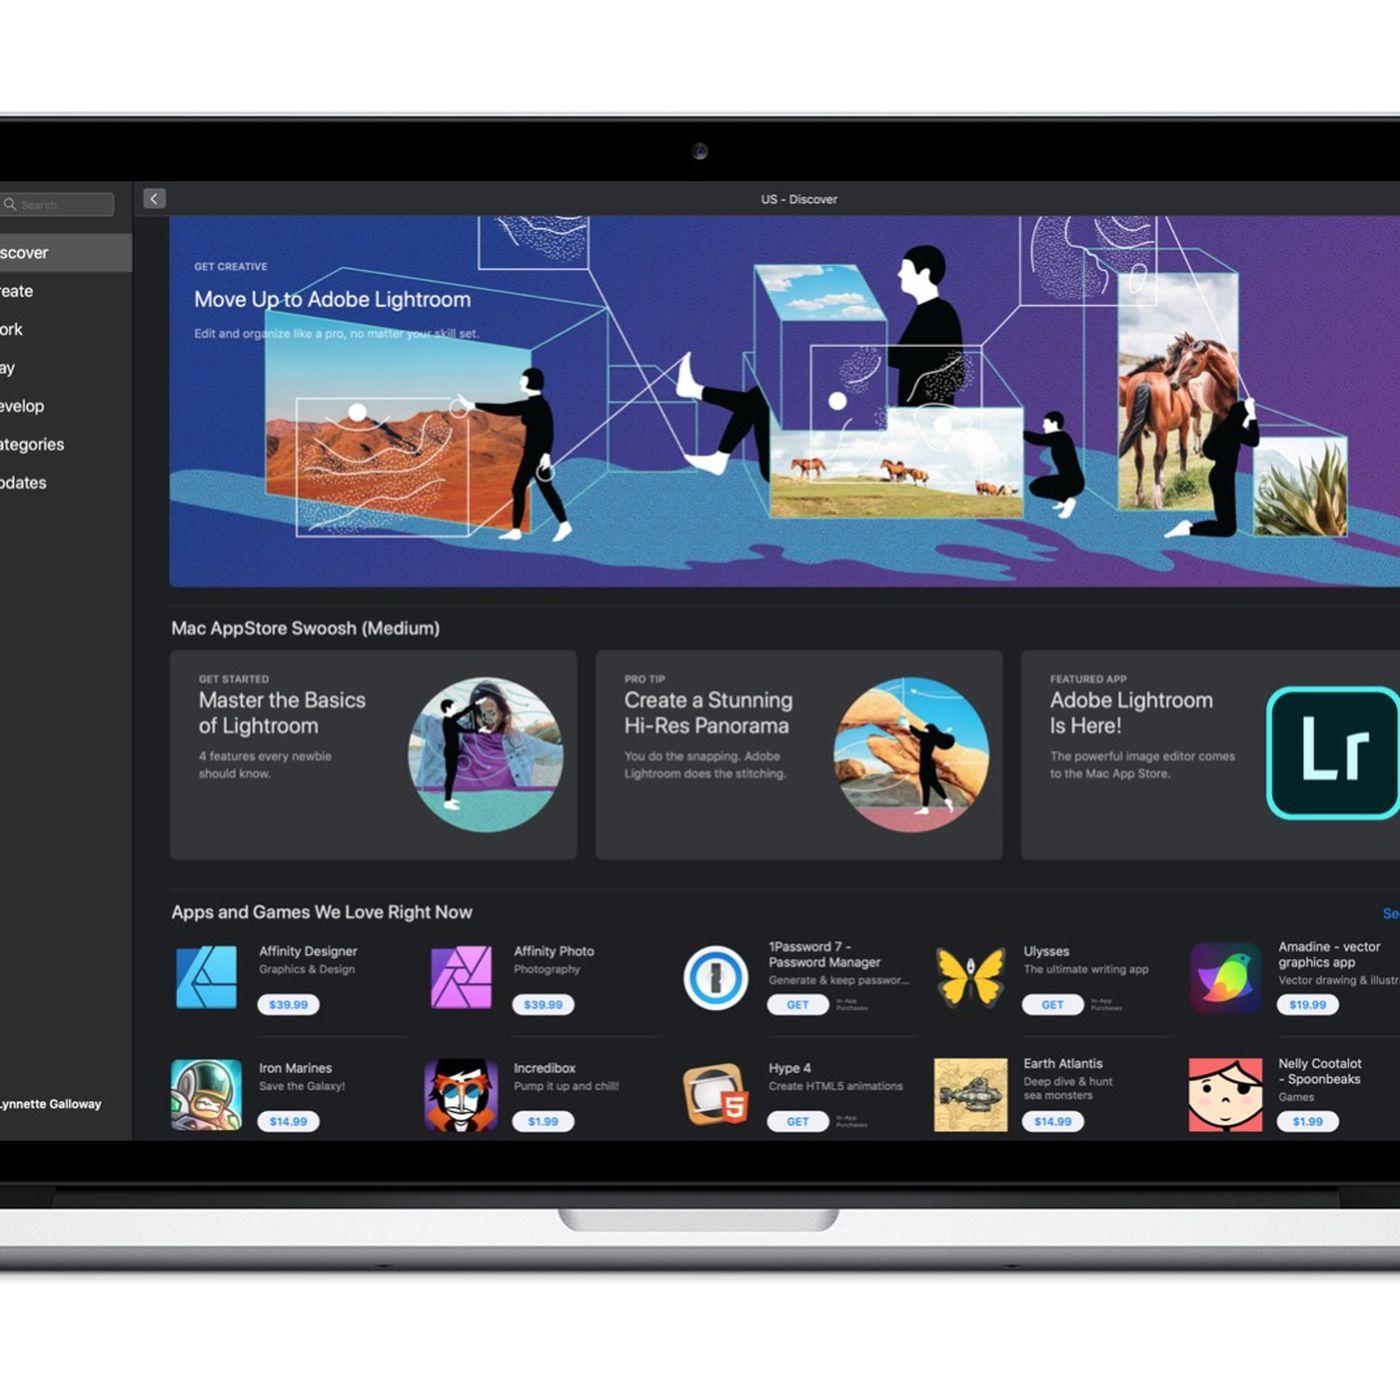 Adobe Lightroom returns to the Mac App Store - The Verge